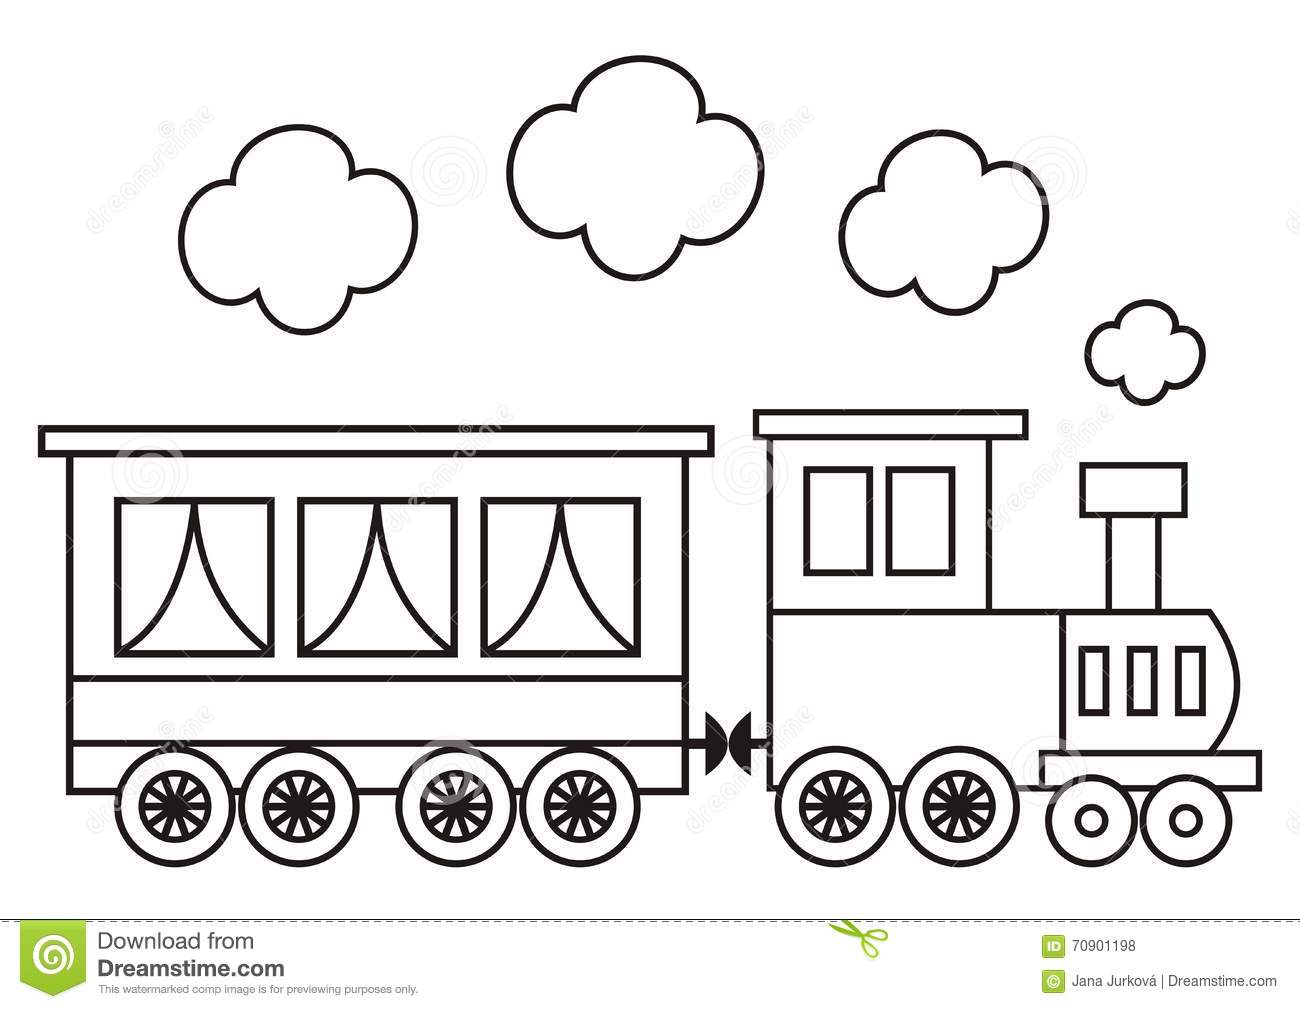 Locomotive Coloring Book Stock Vector Illustration Of Outline